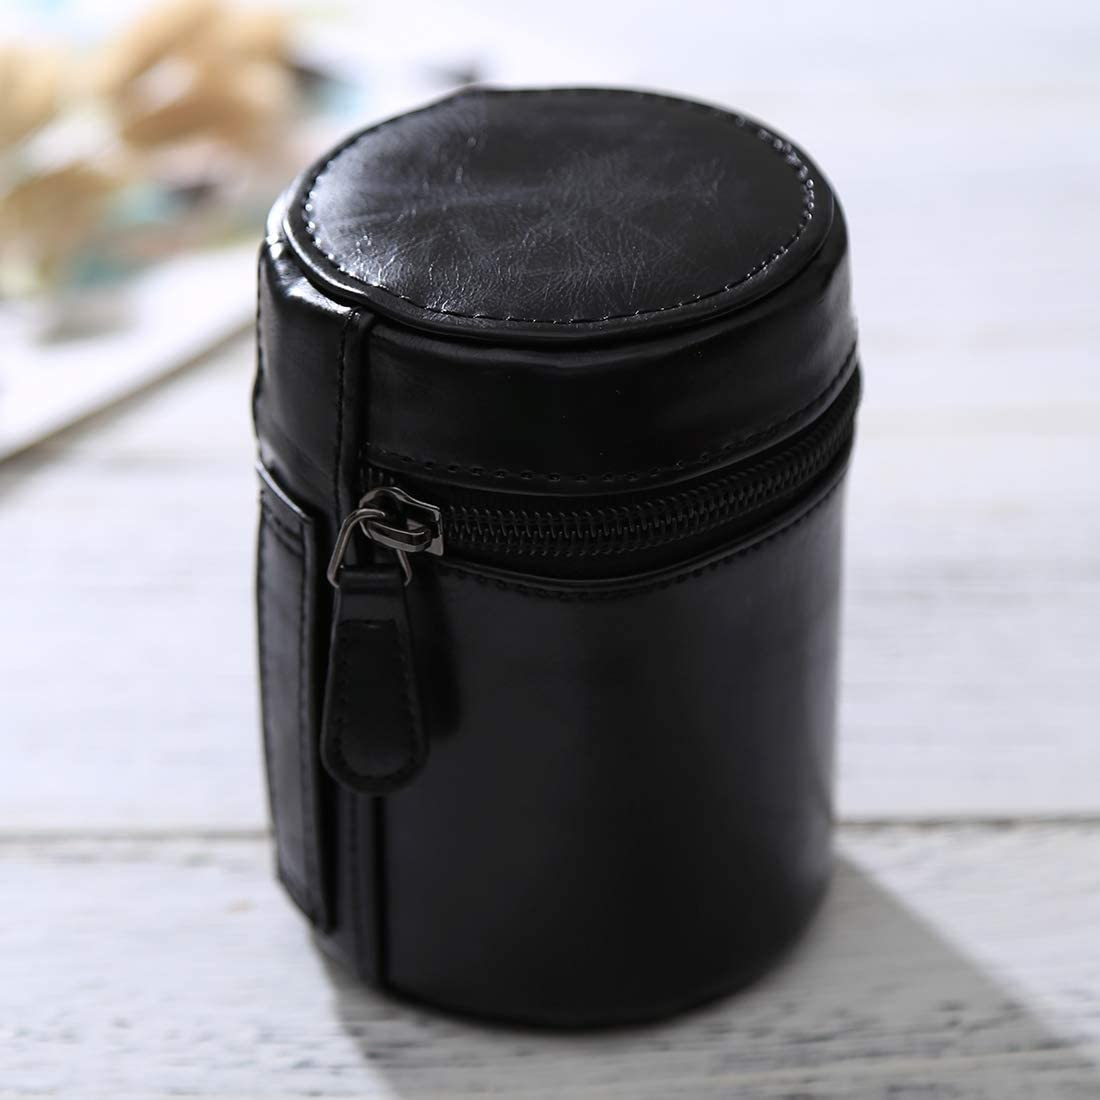 HoodensYHM Small Lens Case Zippered PU Leather Pouch Box for DSLR Camera Lens Size: 11x8x8cm Black Color : Brown